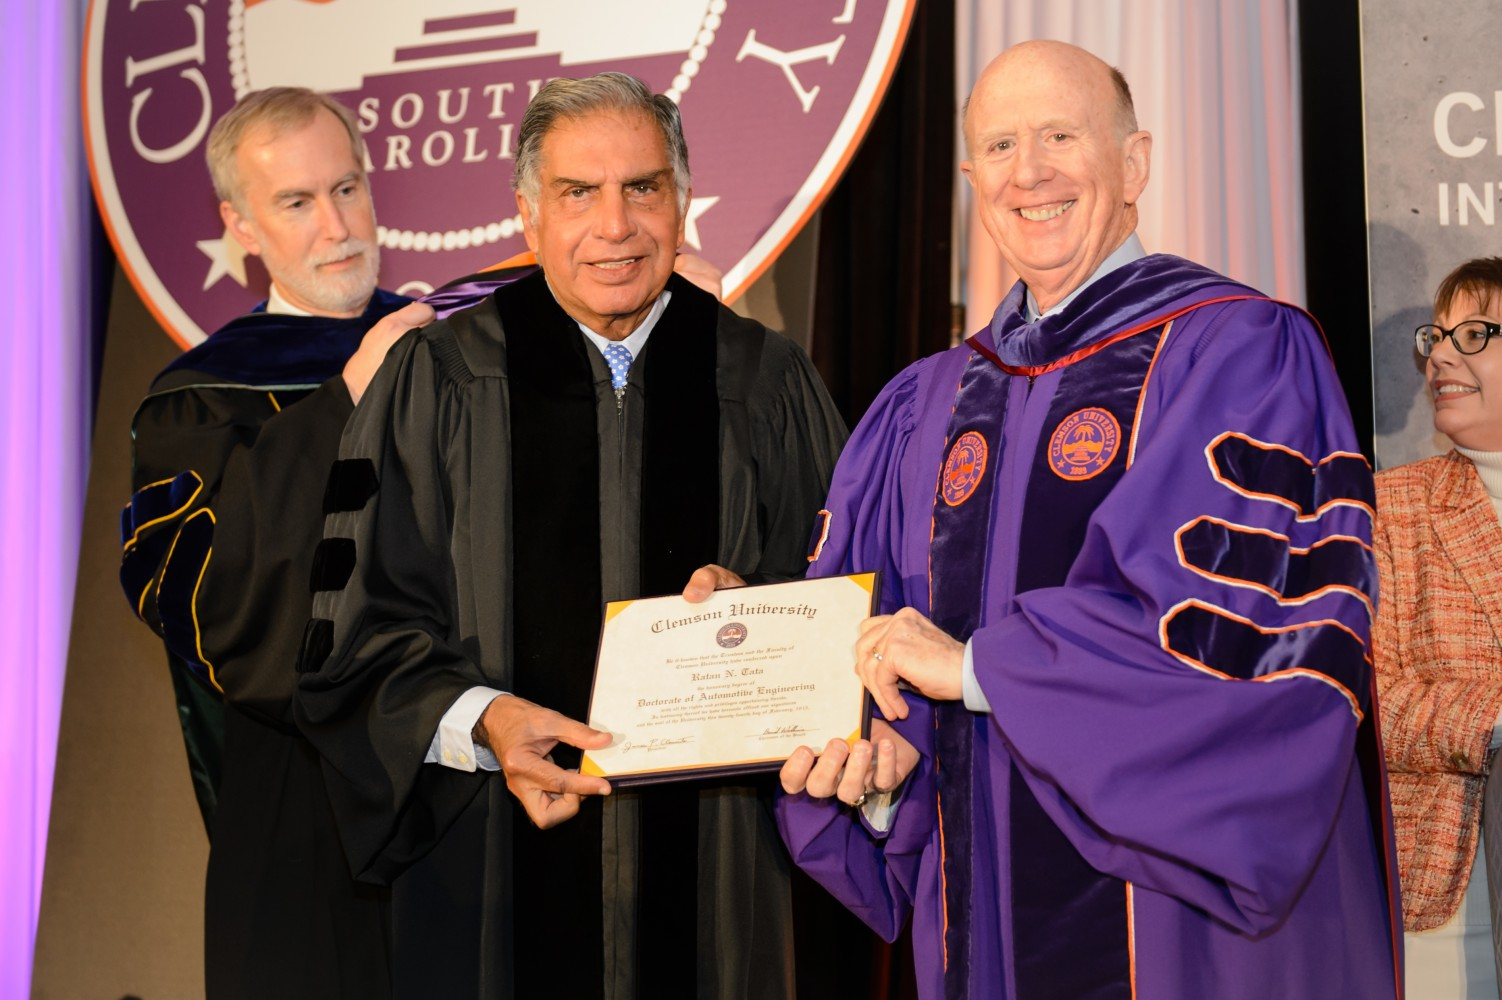 Ratan Tata, center, received Clemson University's first honorary Ph.D. in automotive engineering when he visited in February 2015. He is pictured with Clemson Trustee David Wilkins, right, and Robert Jones, executive vice president for academic affairs and provost